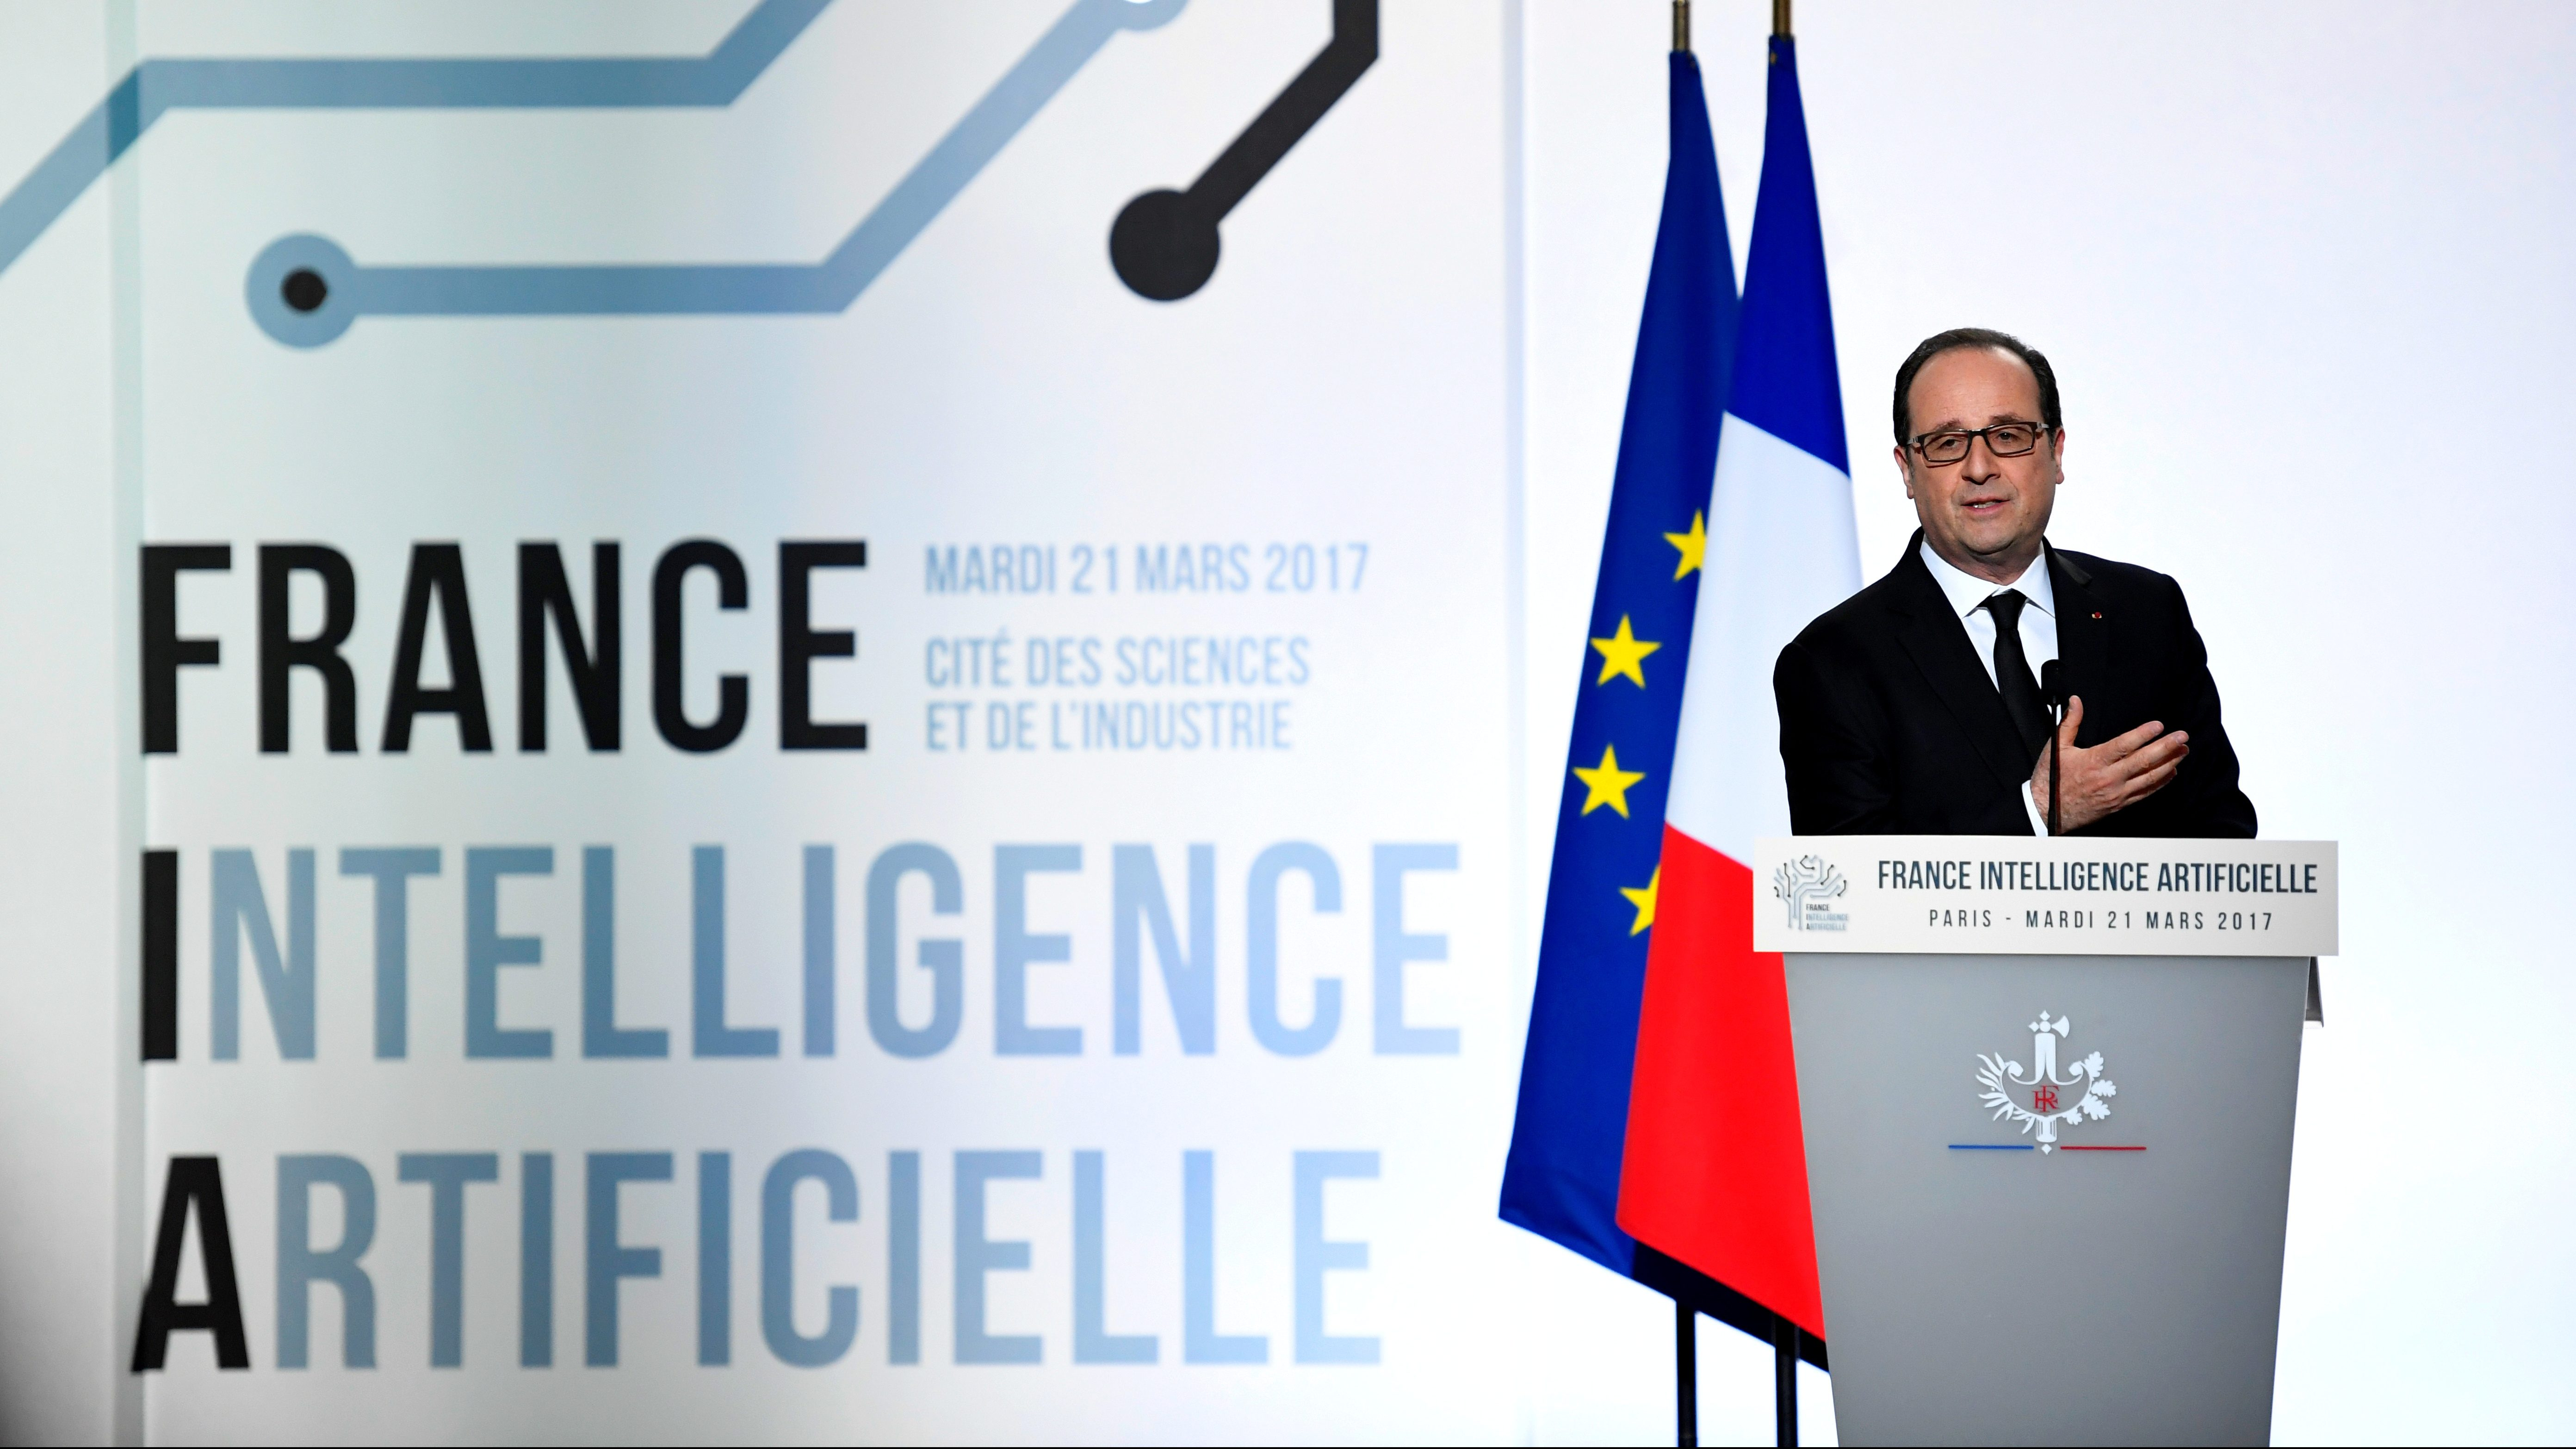 French President Francois Hollande delivers a speech during the launching of French strategy in artificial intelligence at the Cite des Sciences in Paris, France, March 21, 2017. REUTERS/Stephane de Sakutin/Pool - RC18CFD3DCA0